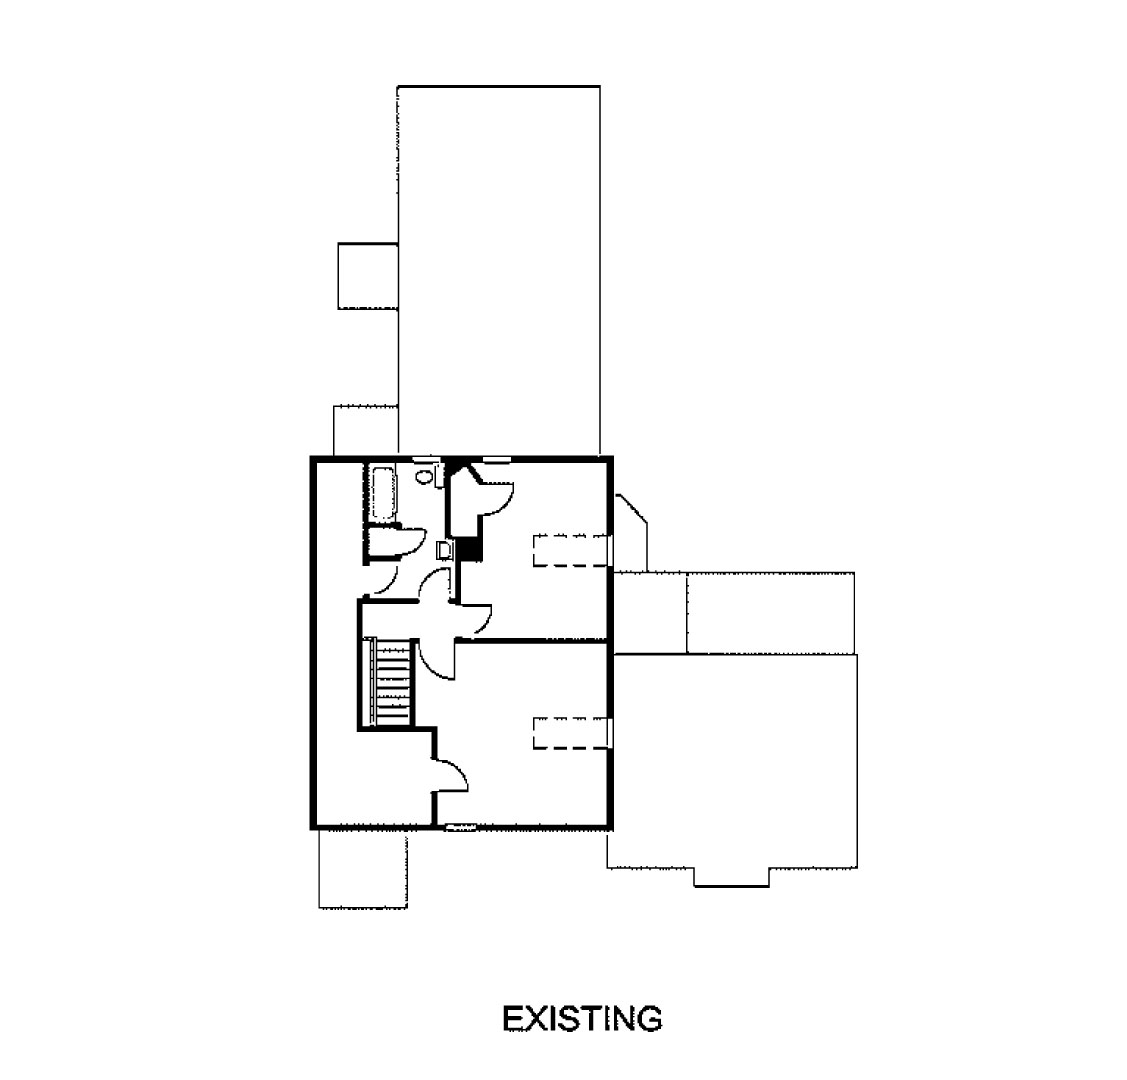 third floor existing credit estes twombly - Images House Plans 1890 S